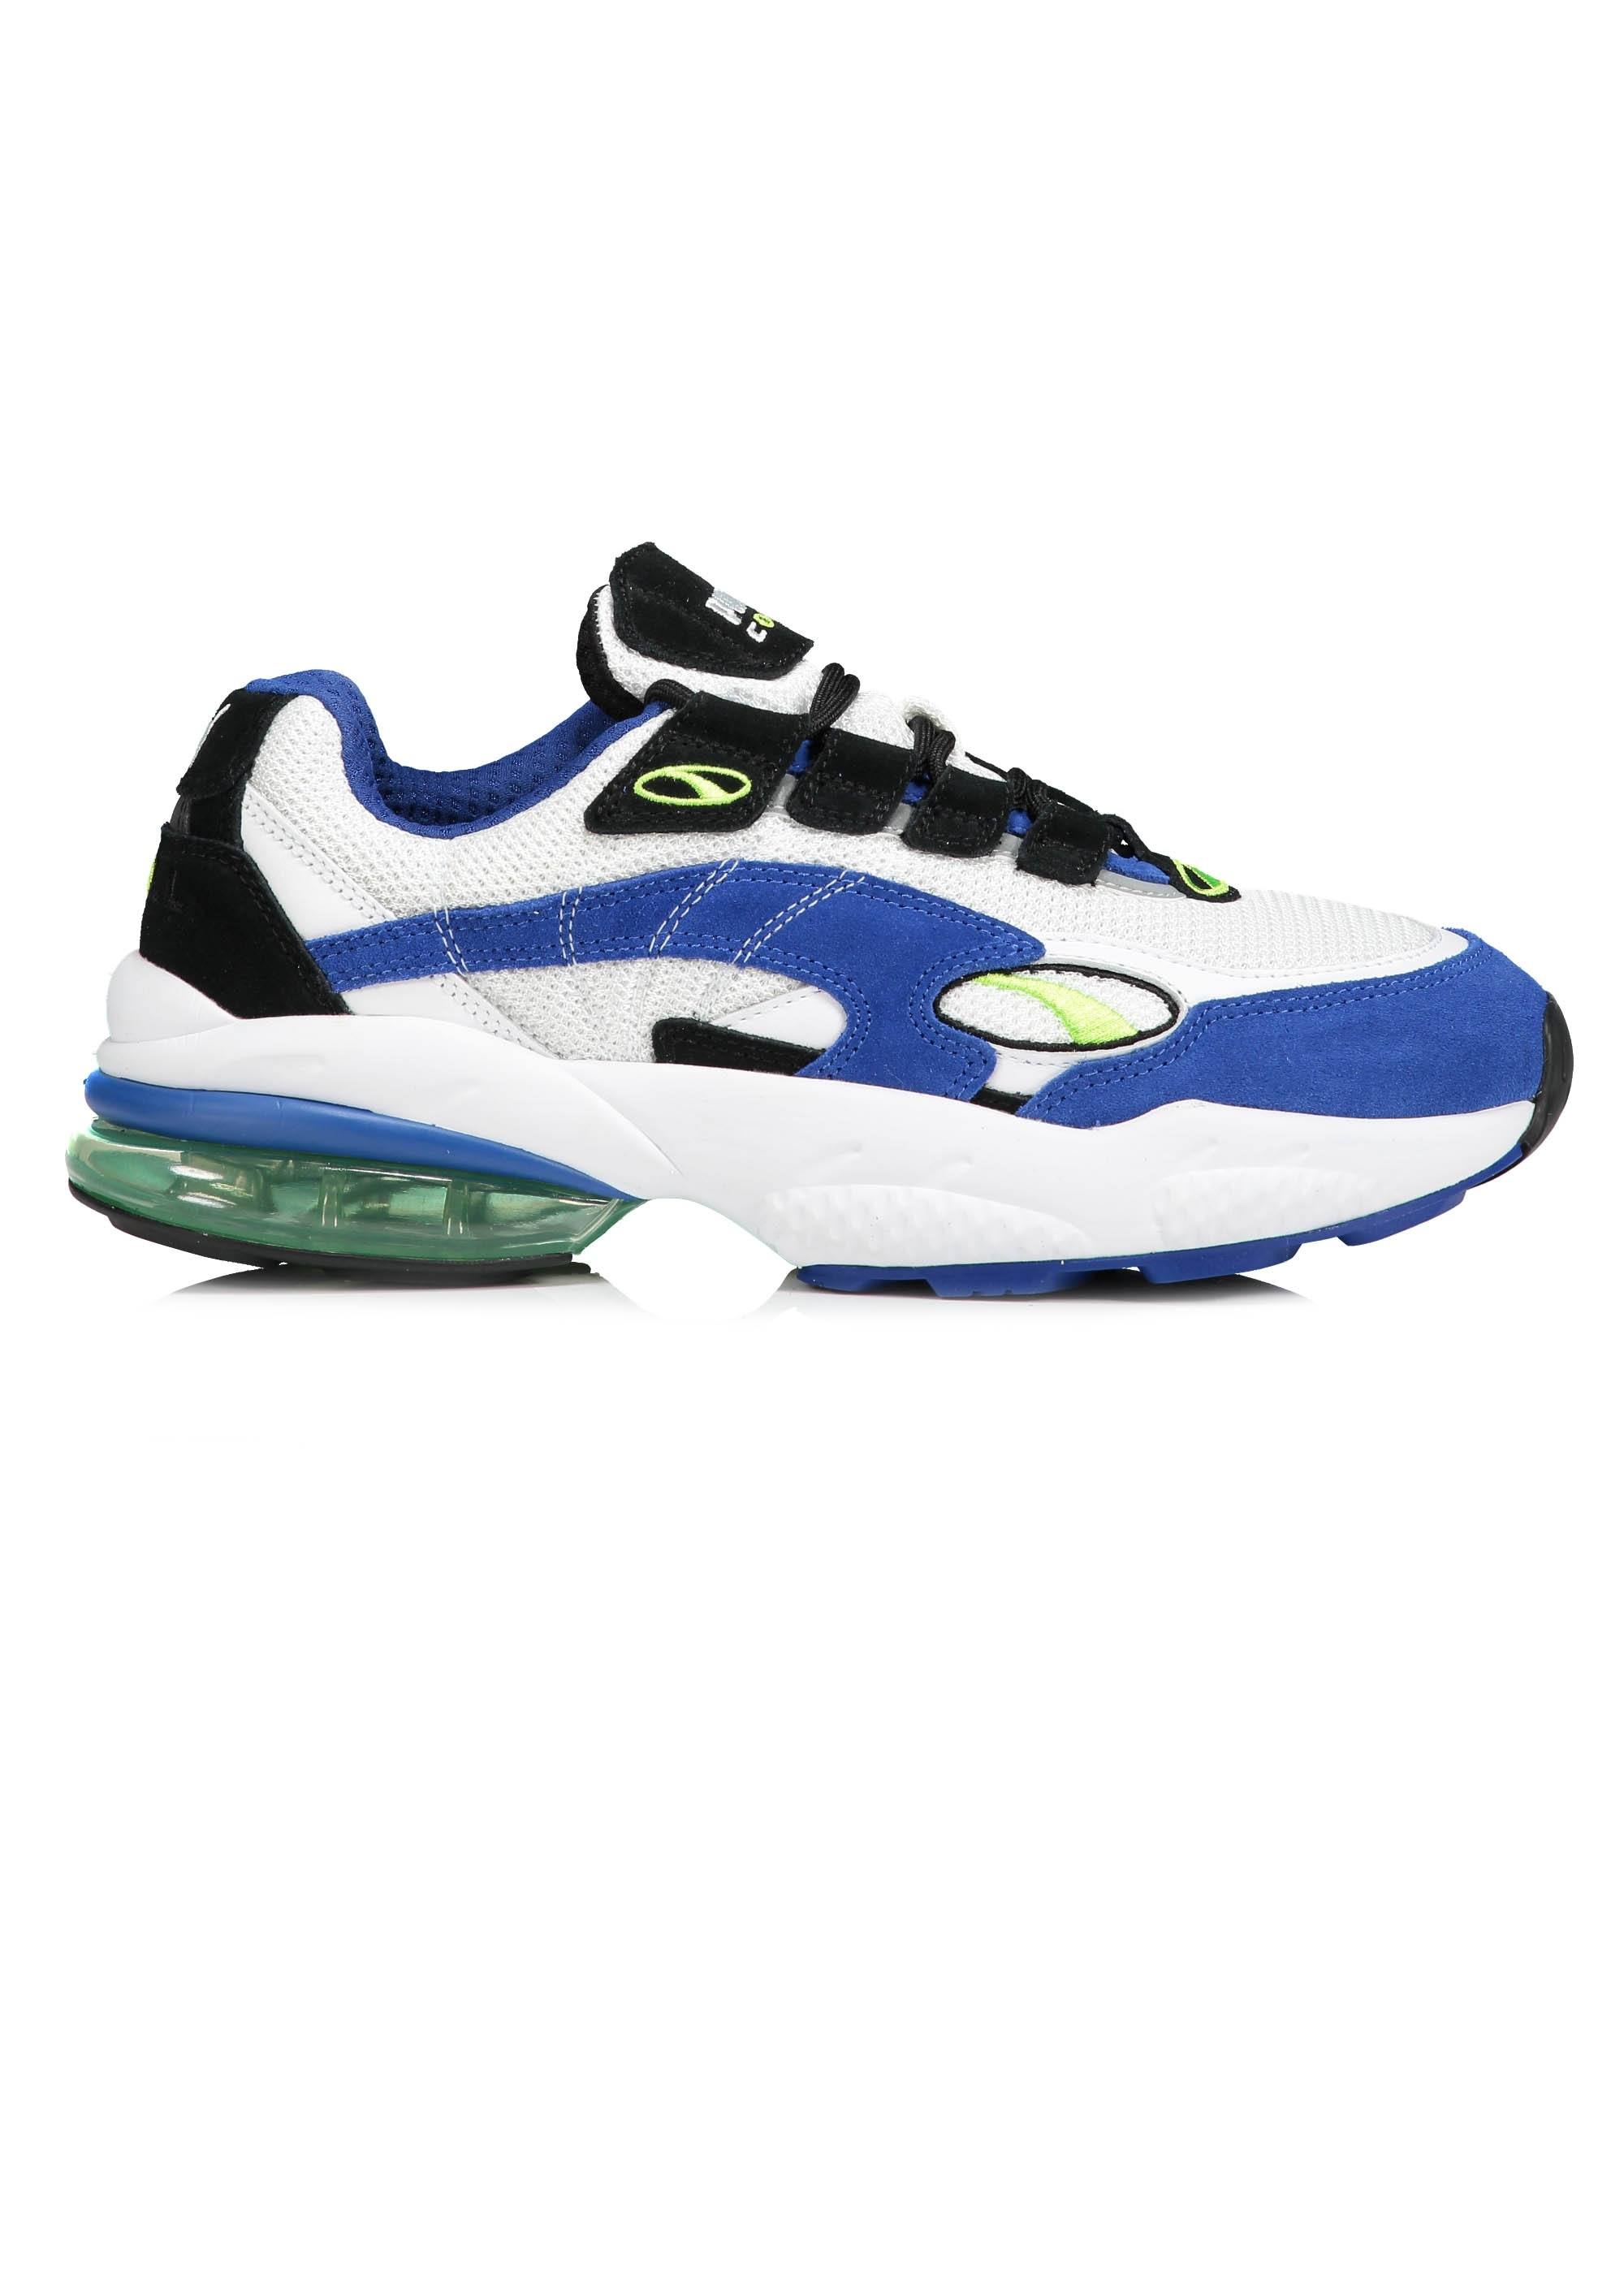 Puma Cell Venom - White   Blue - Trainers from Triads UK f3dfcdda88b7